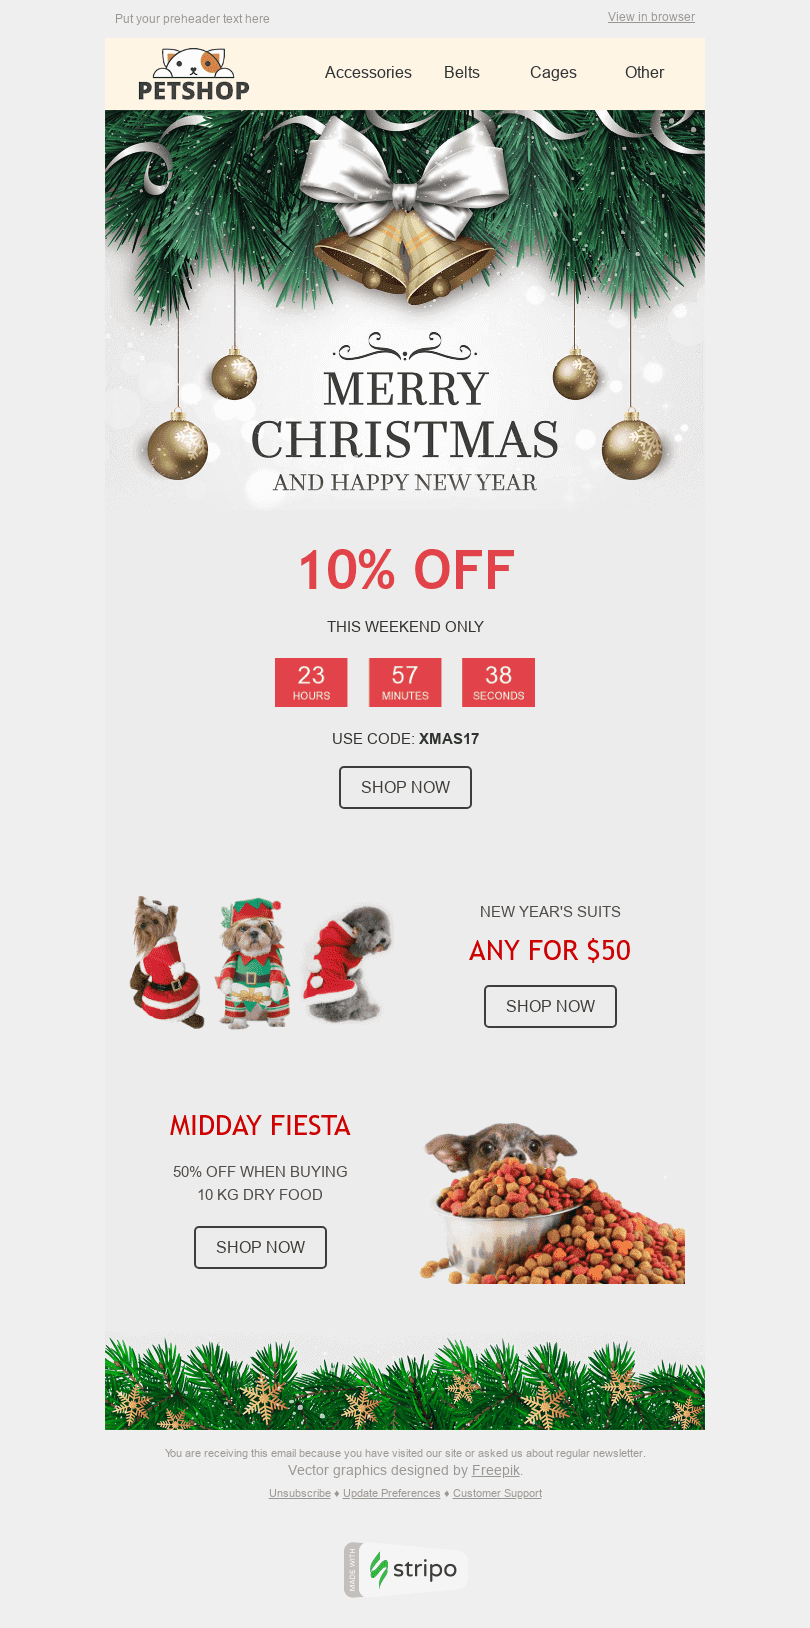 Stripo Pets Holiday newsletter Merry Christmas email web